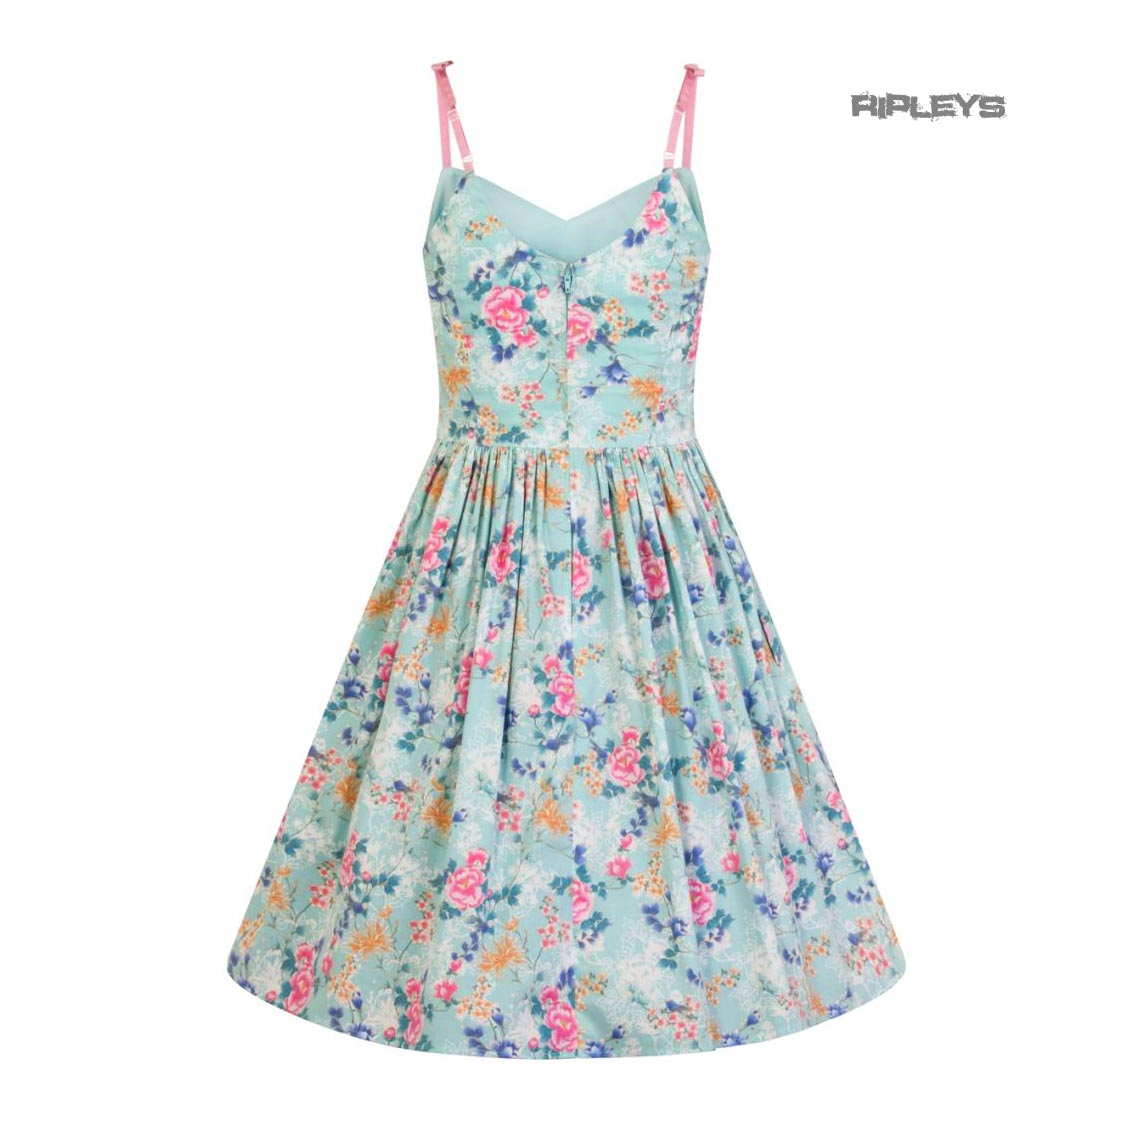 Hell-Bunny-50s-Mid-Length-Dress-Vintage-Blue-Pink-SAKURA-Flowers-Roses-All-Sizes thumbnail 19